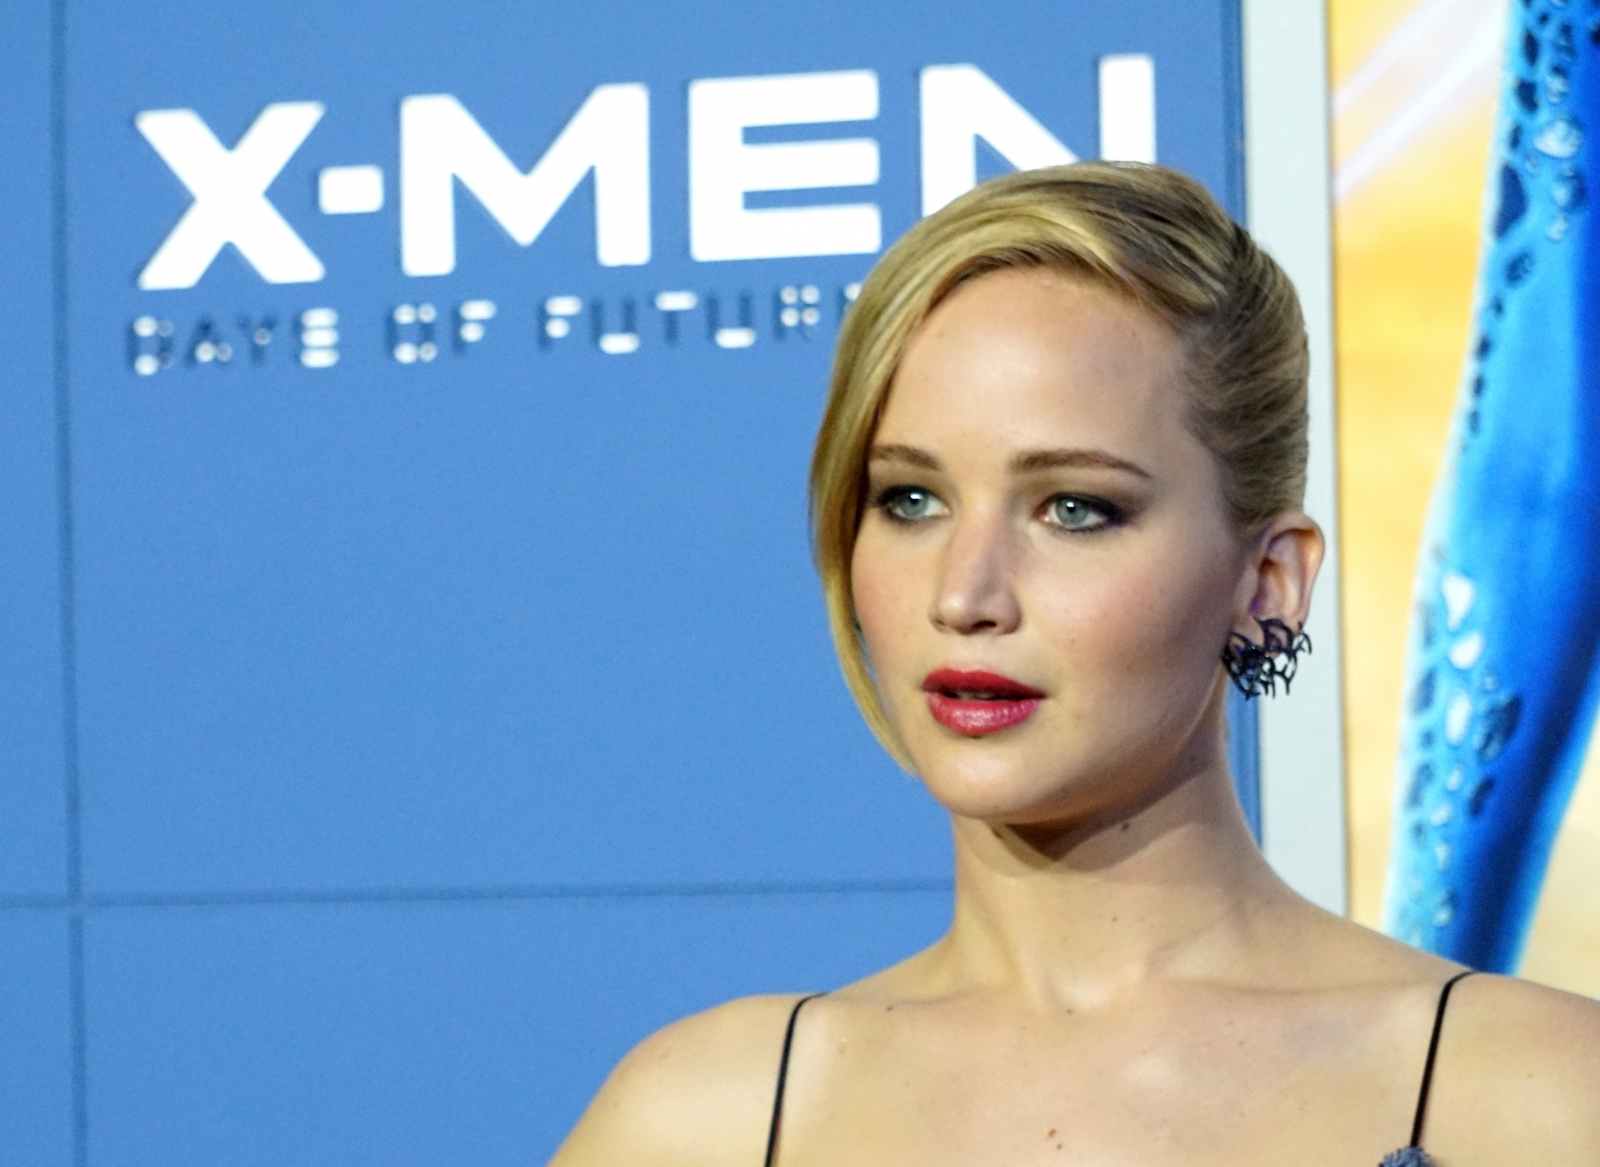 Jennifer Lawrence had naked photos stolen from her Apple iCloud account